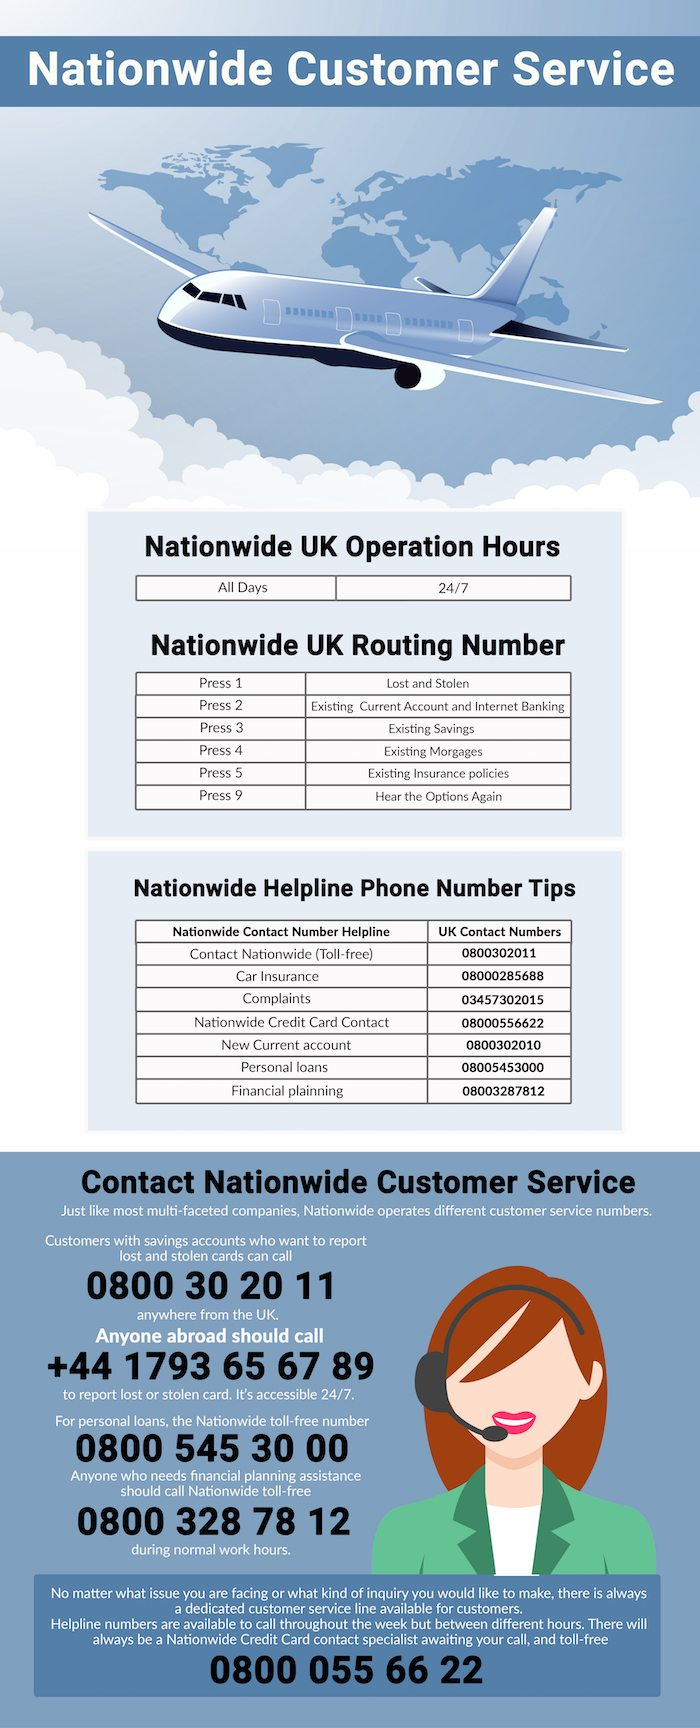 Nationwide Contact Helpline